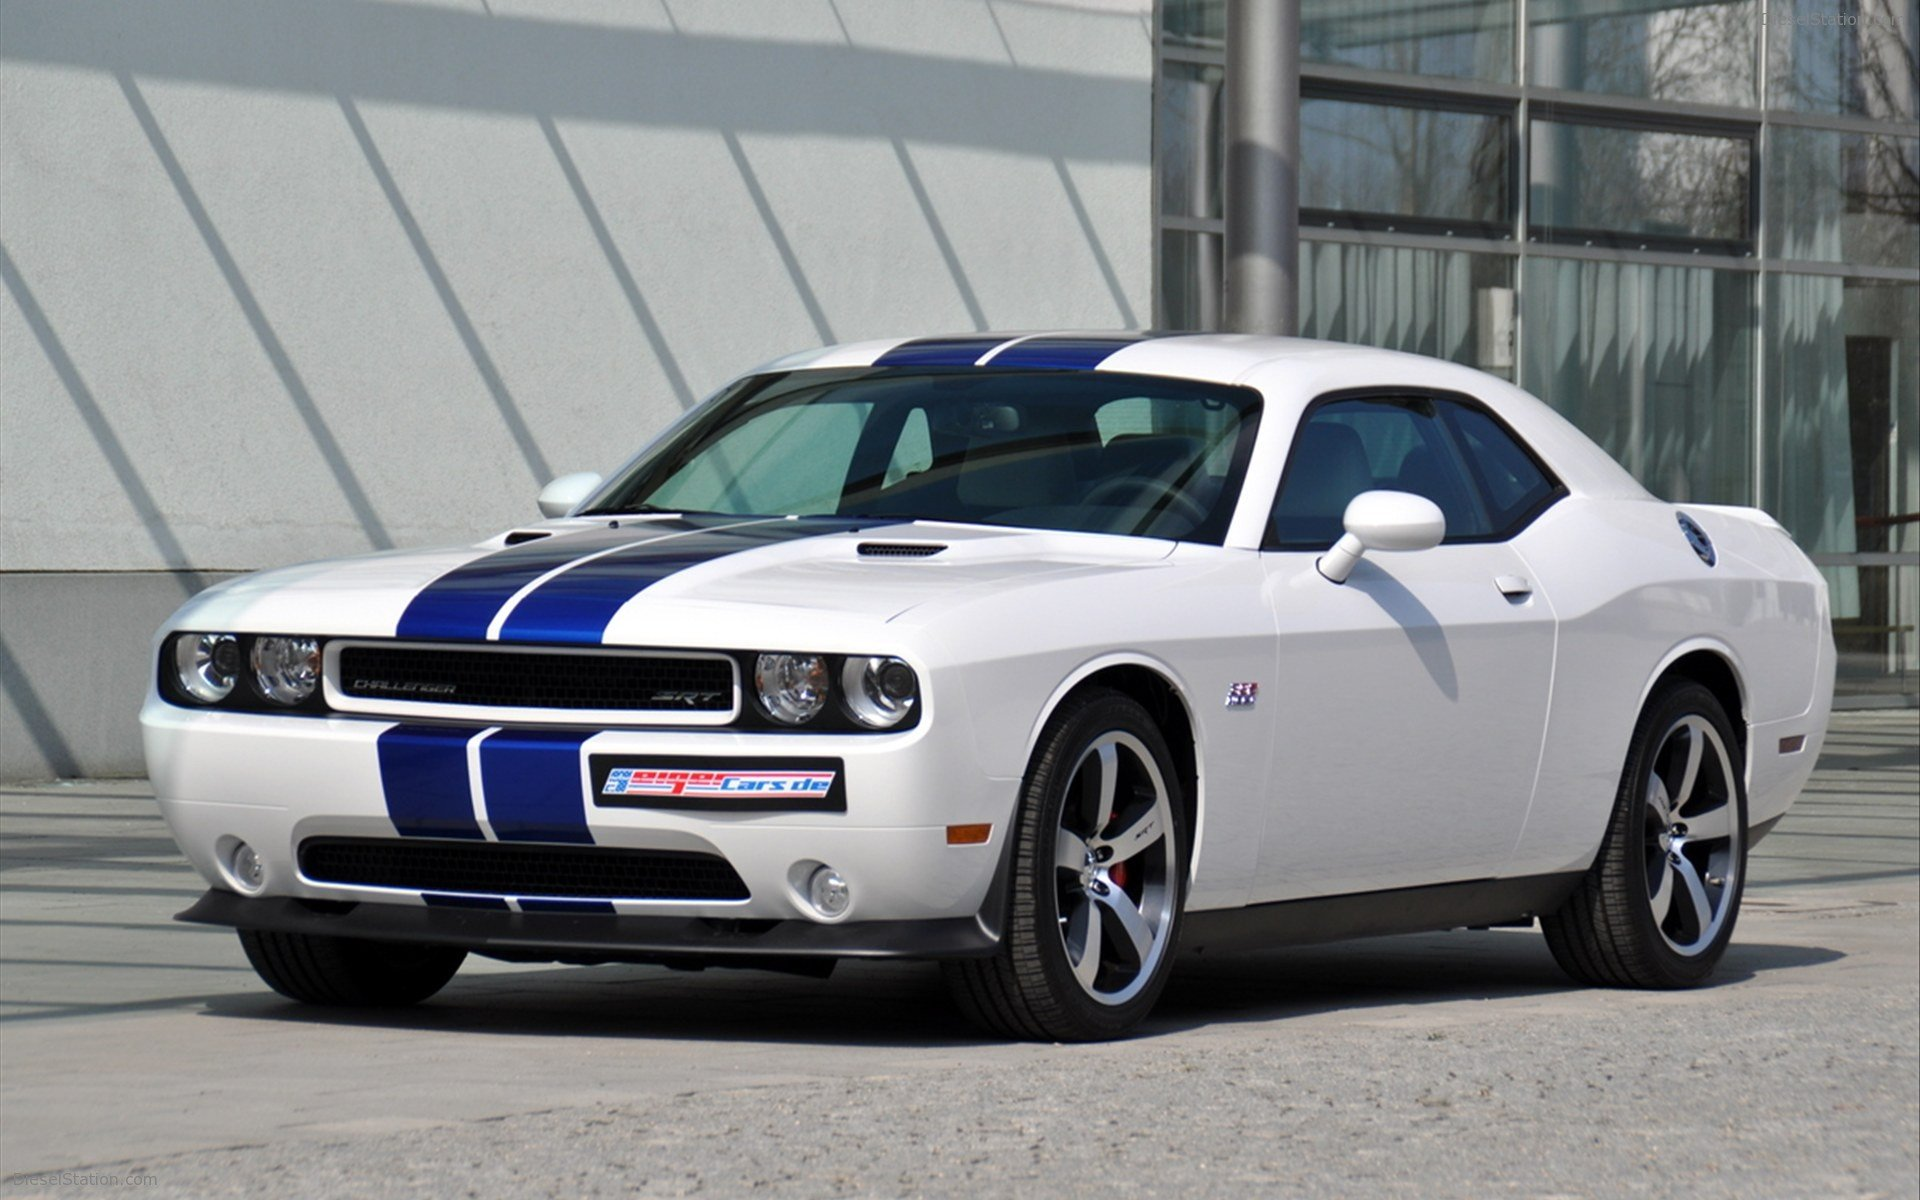 Cars Wallpapers Dodge Challenger SRT8 White Best Wallpapers 9570 1920x1200